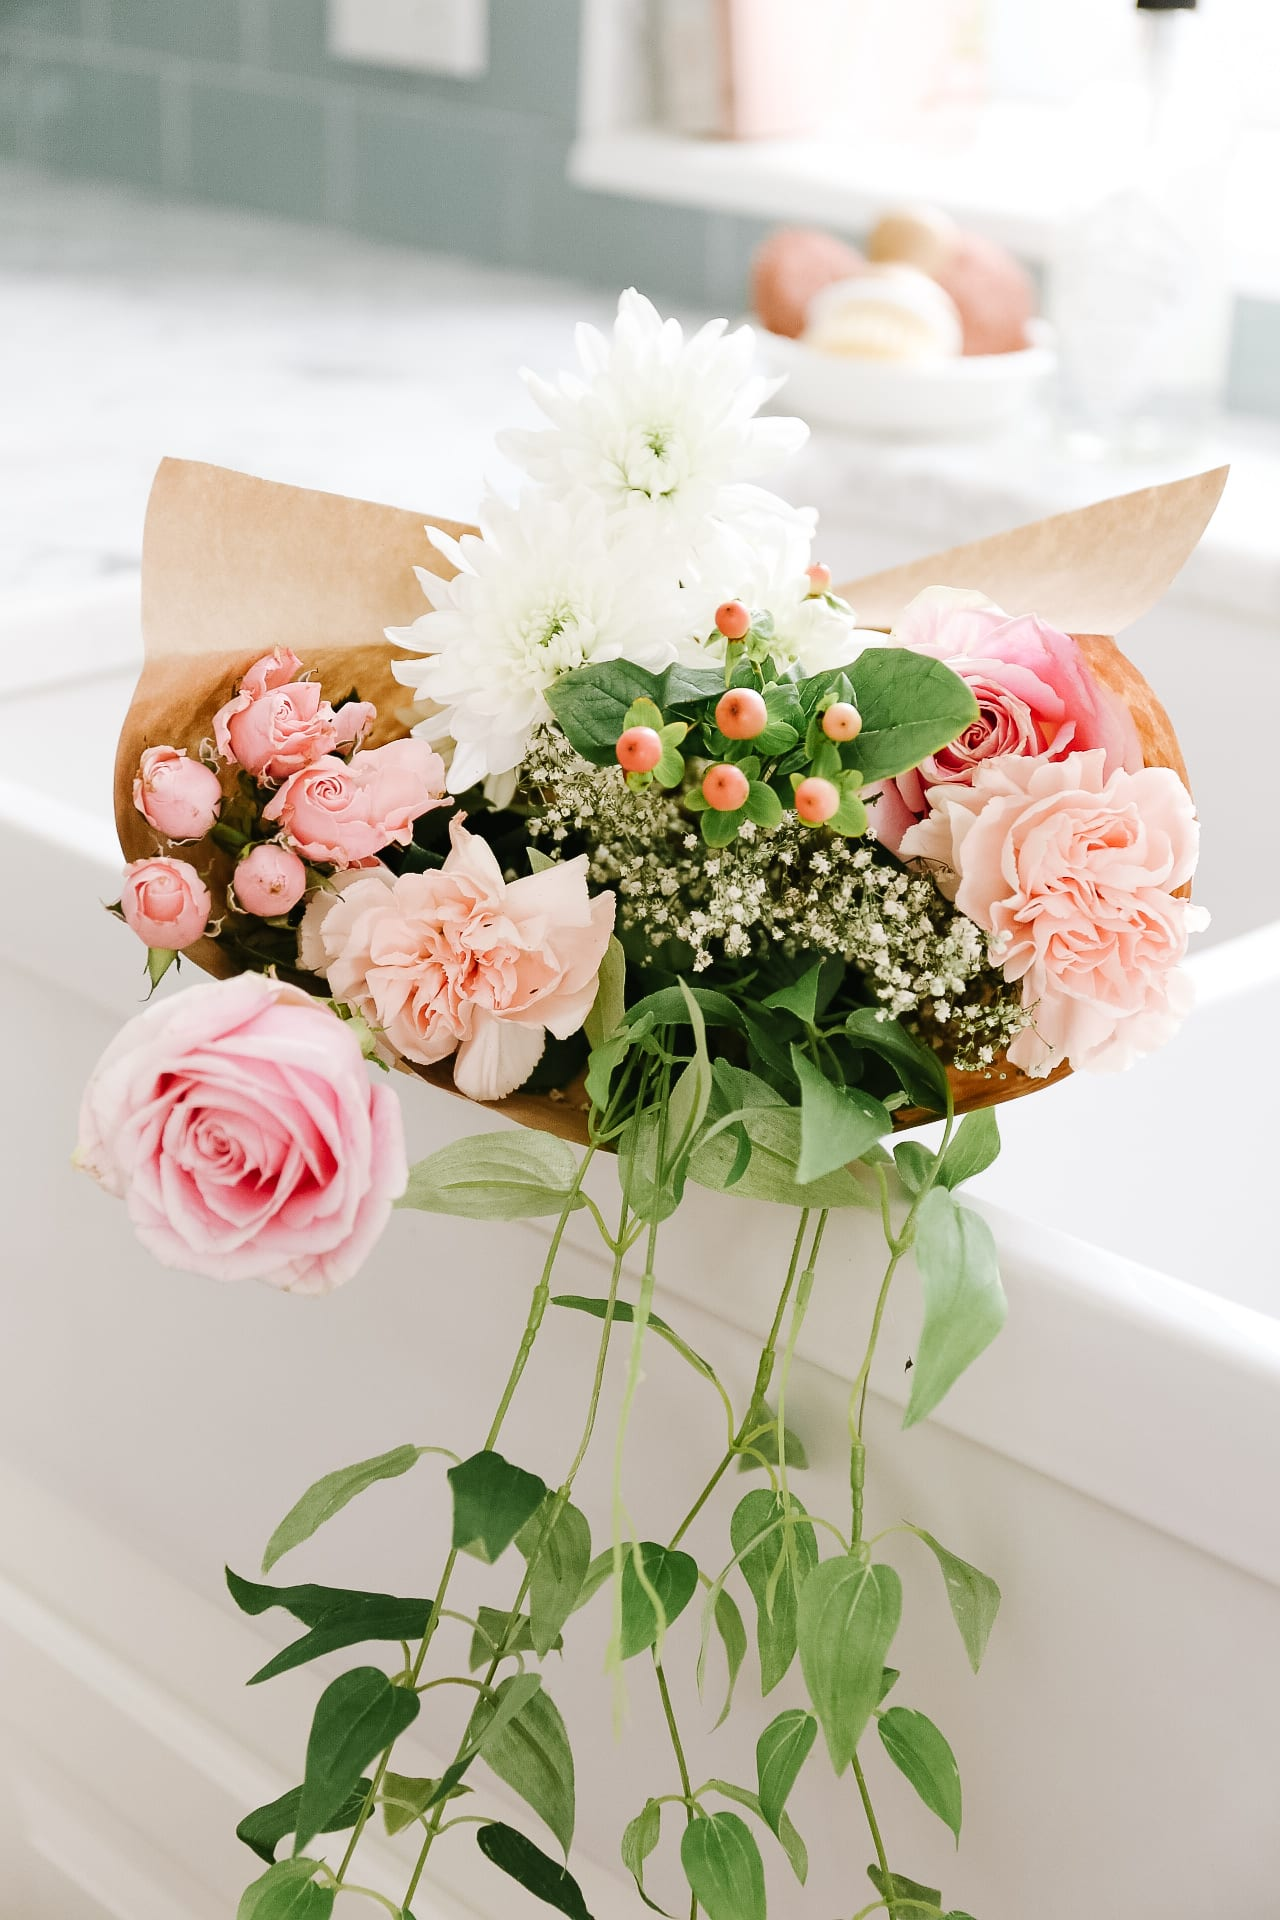 Fresh florals for Valentine's Day at The Ginger Home